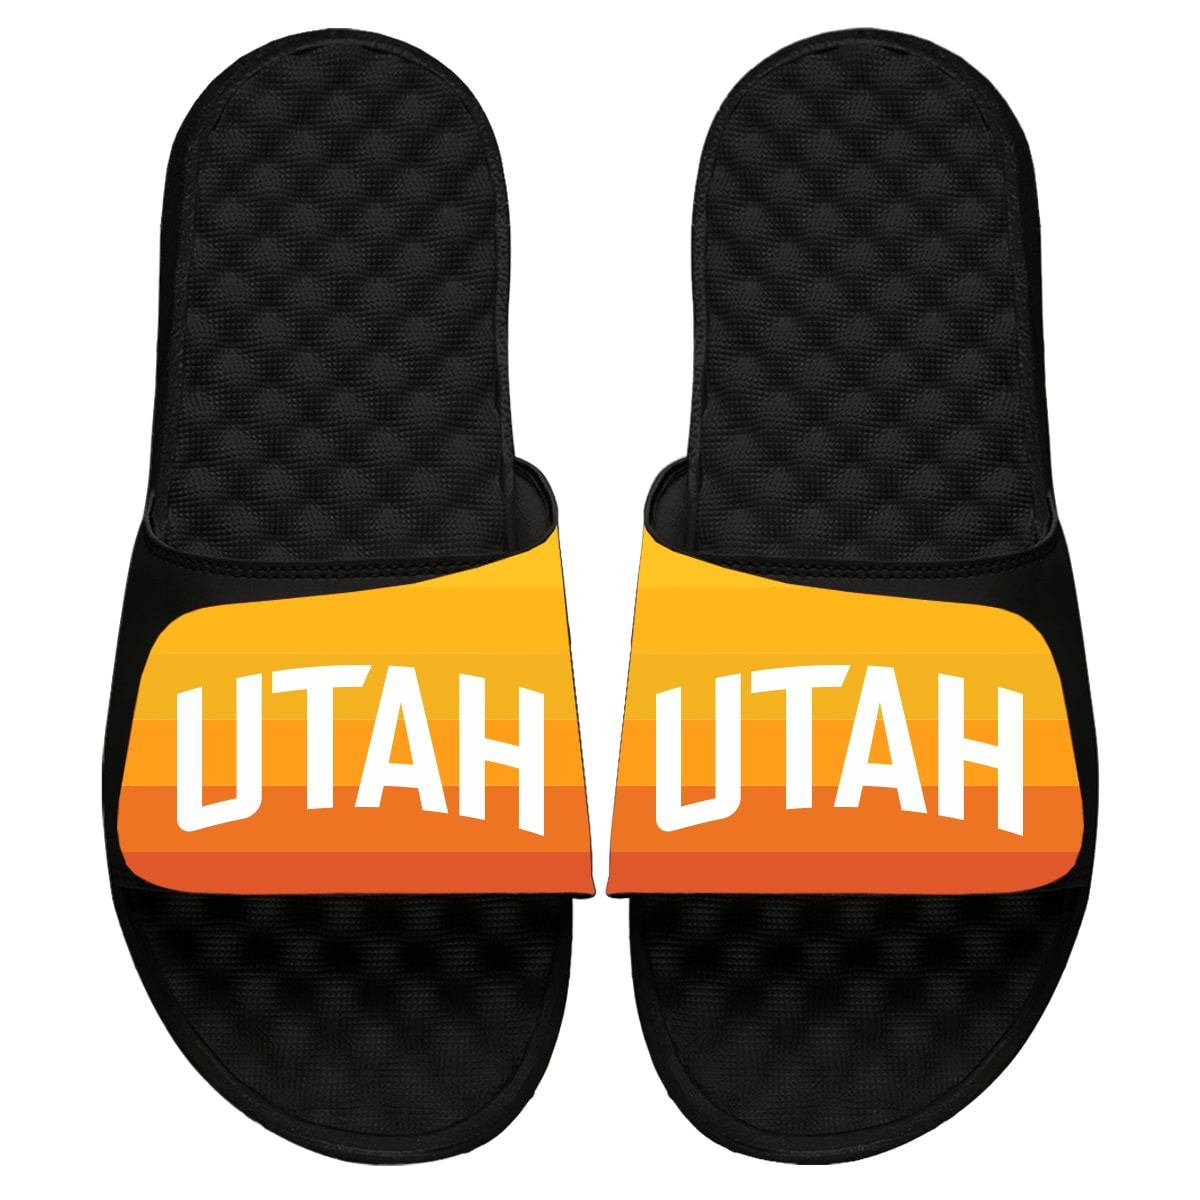 Utah Jazz ISlide 2019/20 City Edition Slide Sandals - Black